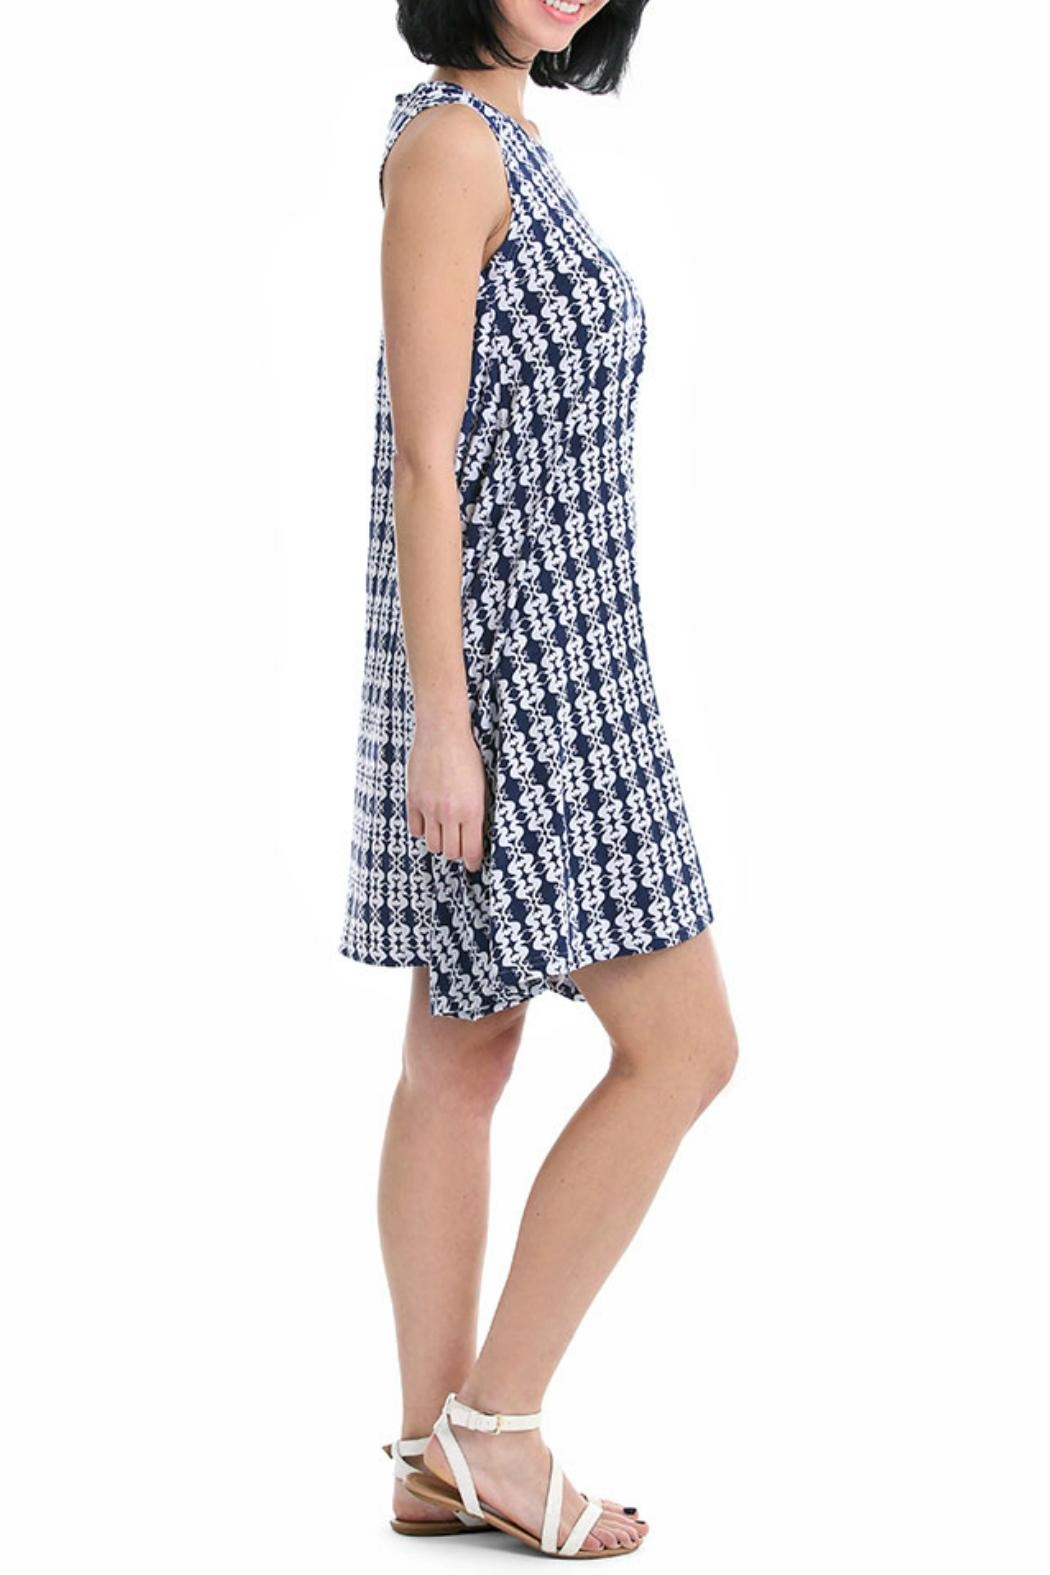 Malabar Bay Sea Kisses Dress - Side Cropped Image